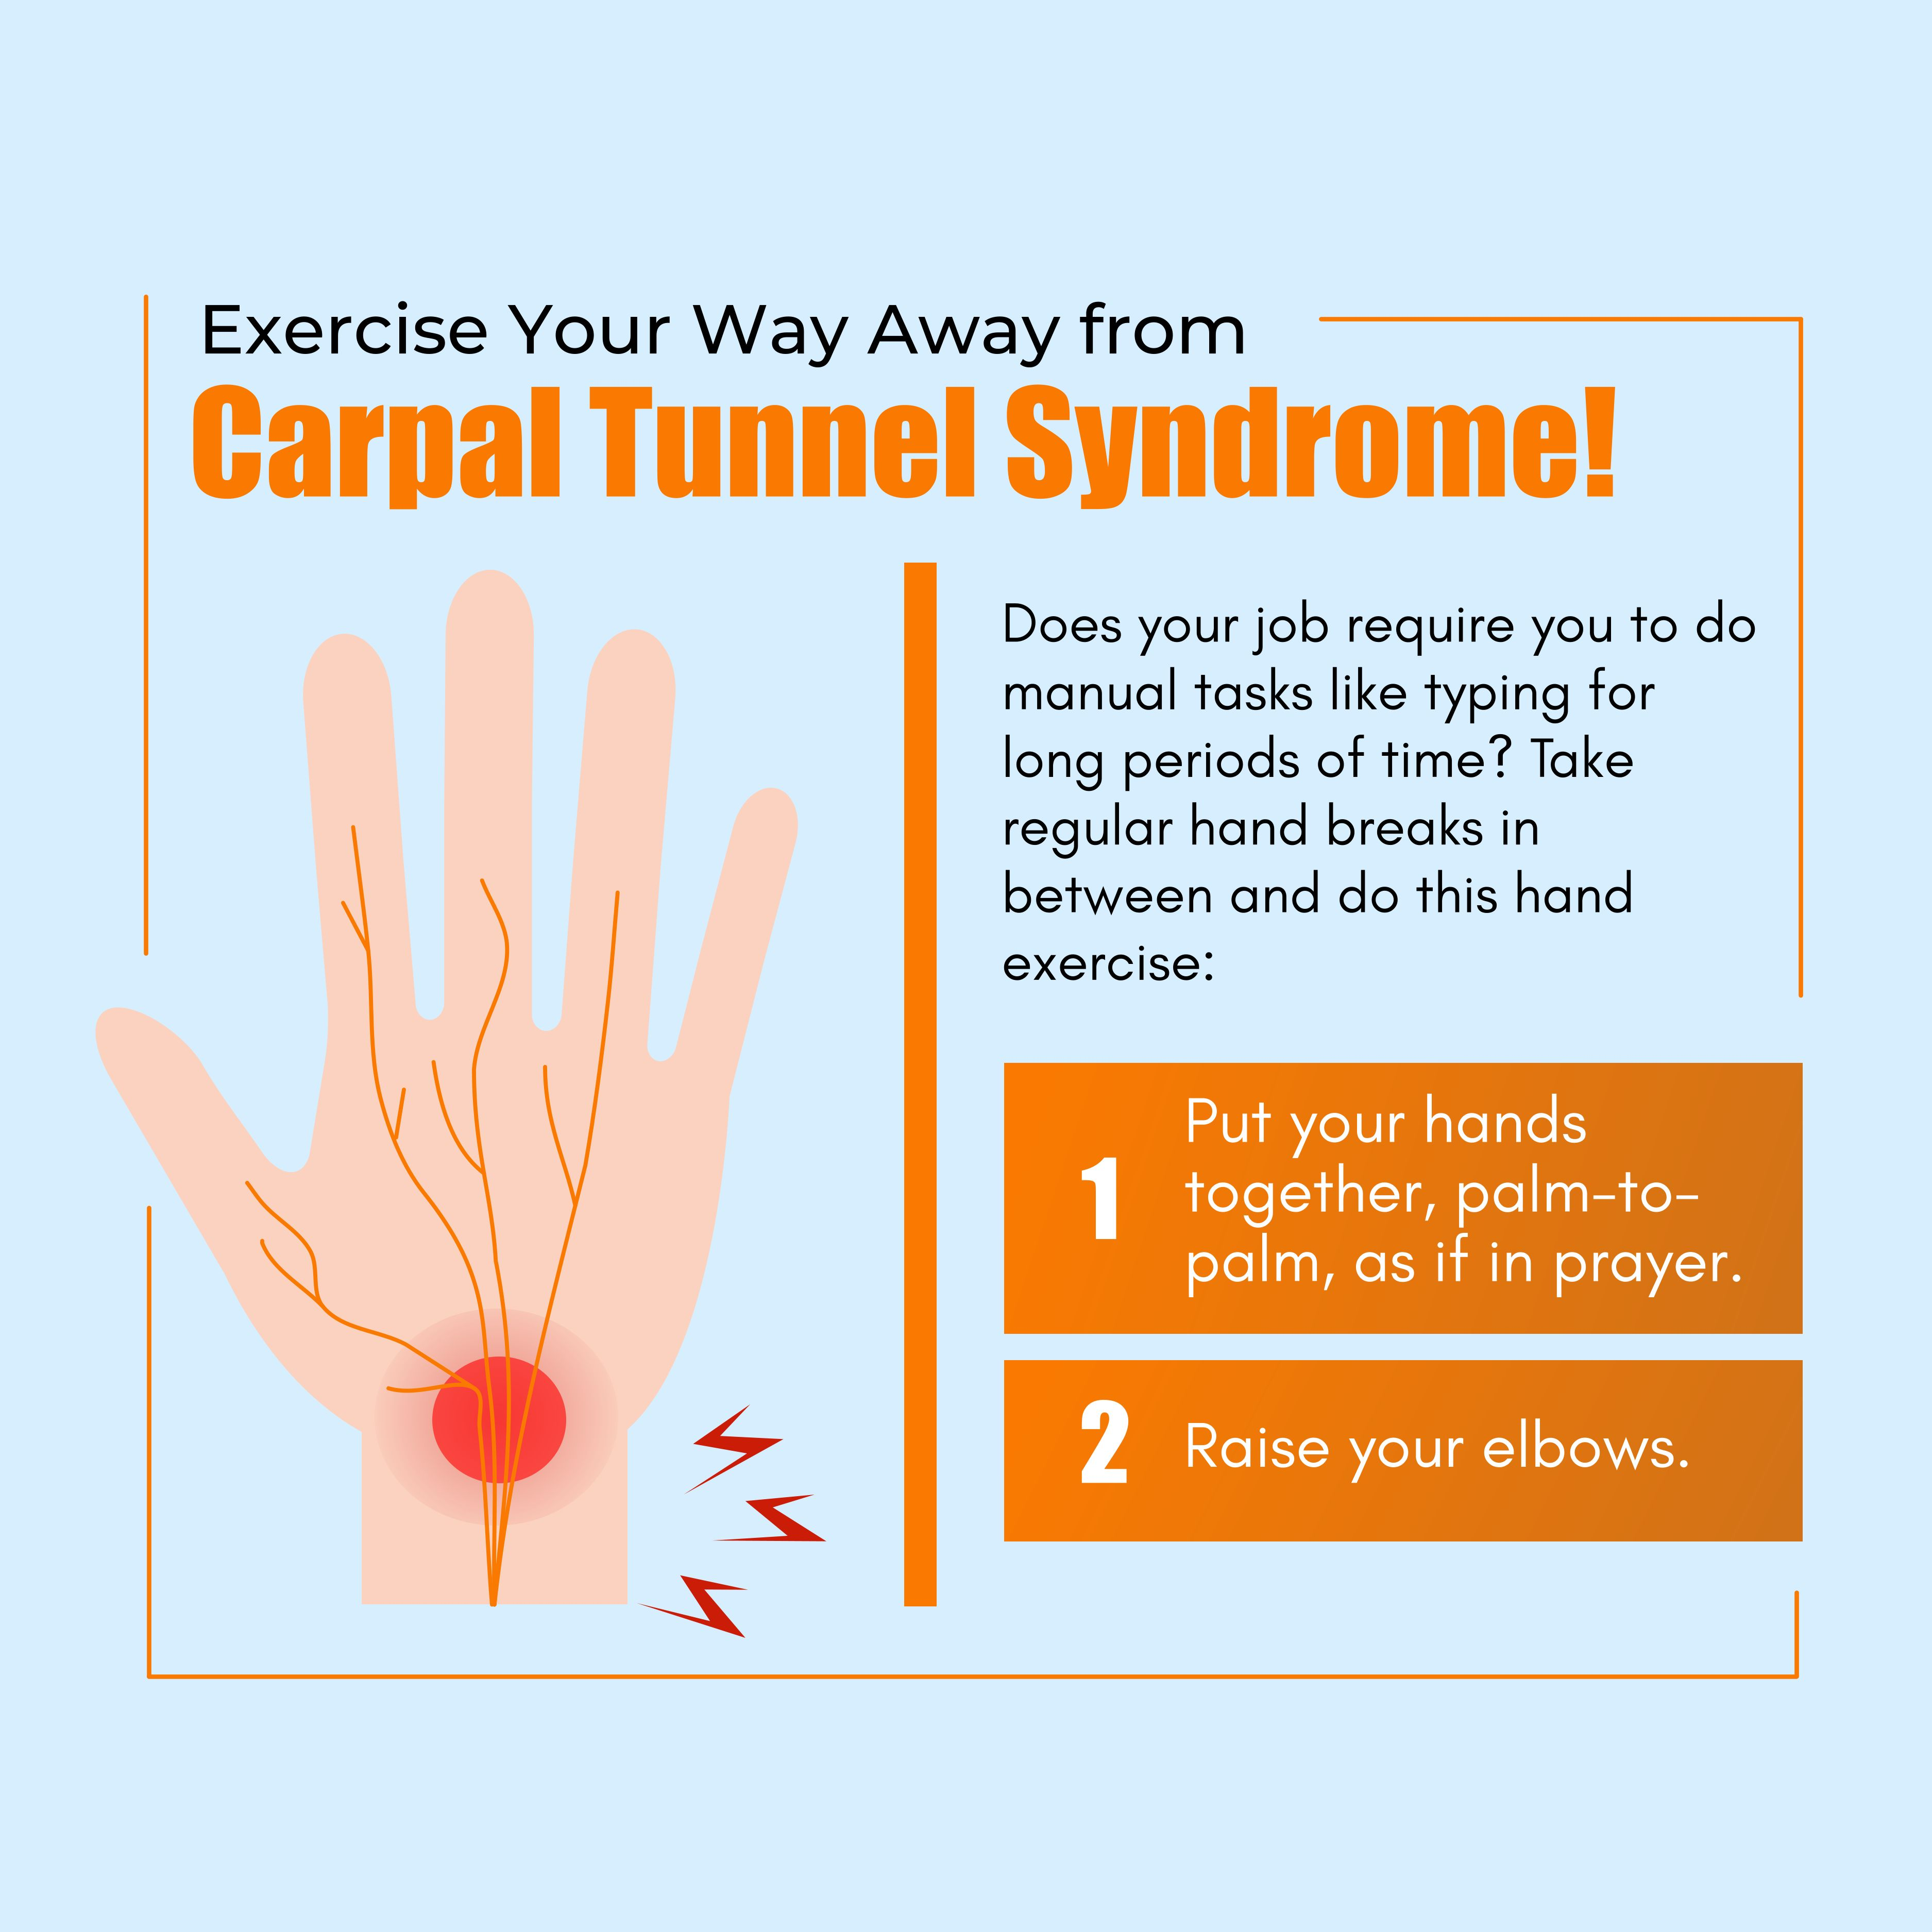 Exercise Your Way Away from Carpal Tunnel Syndrome!